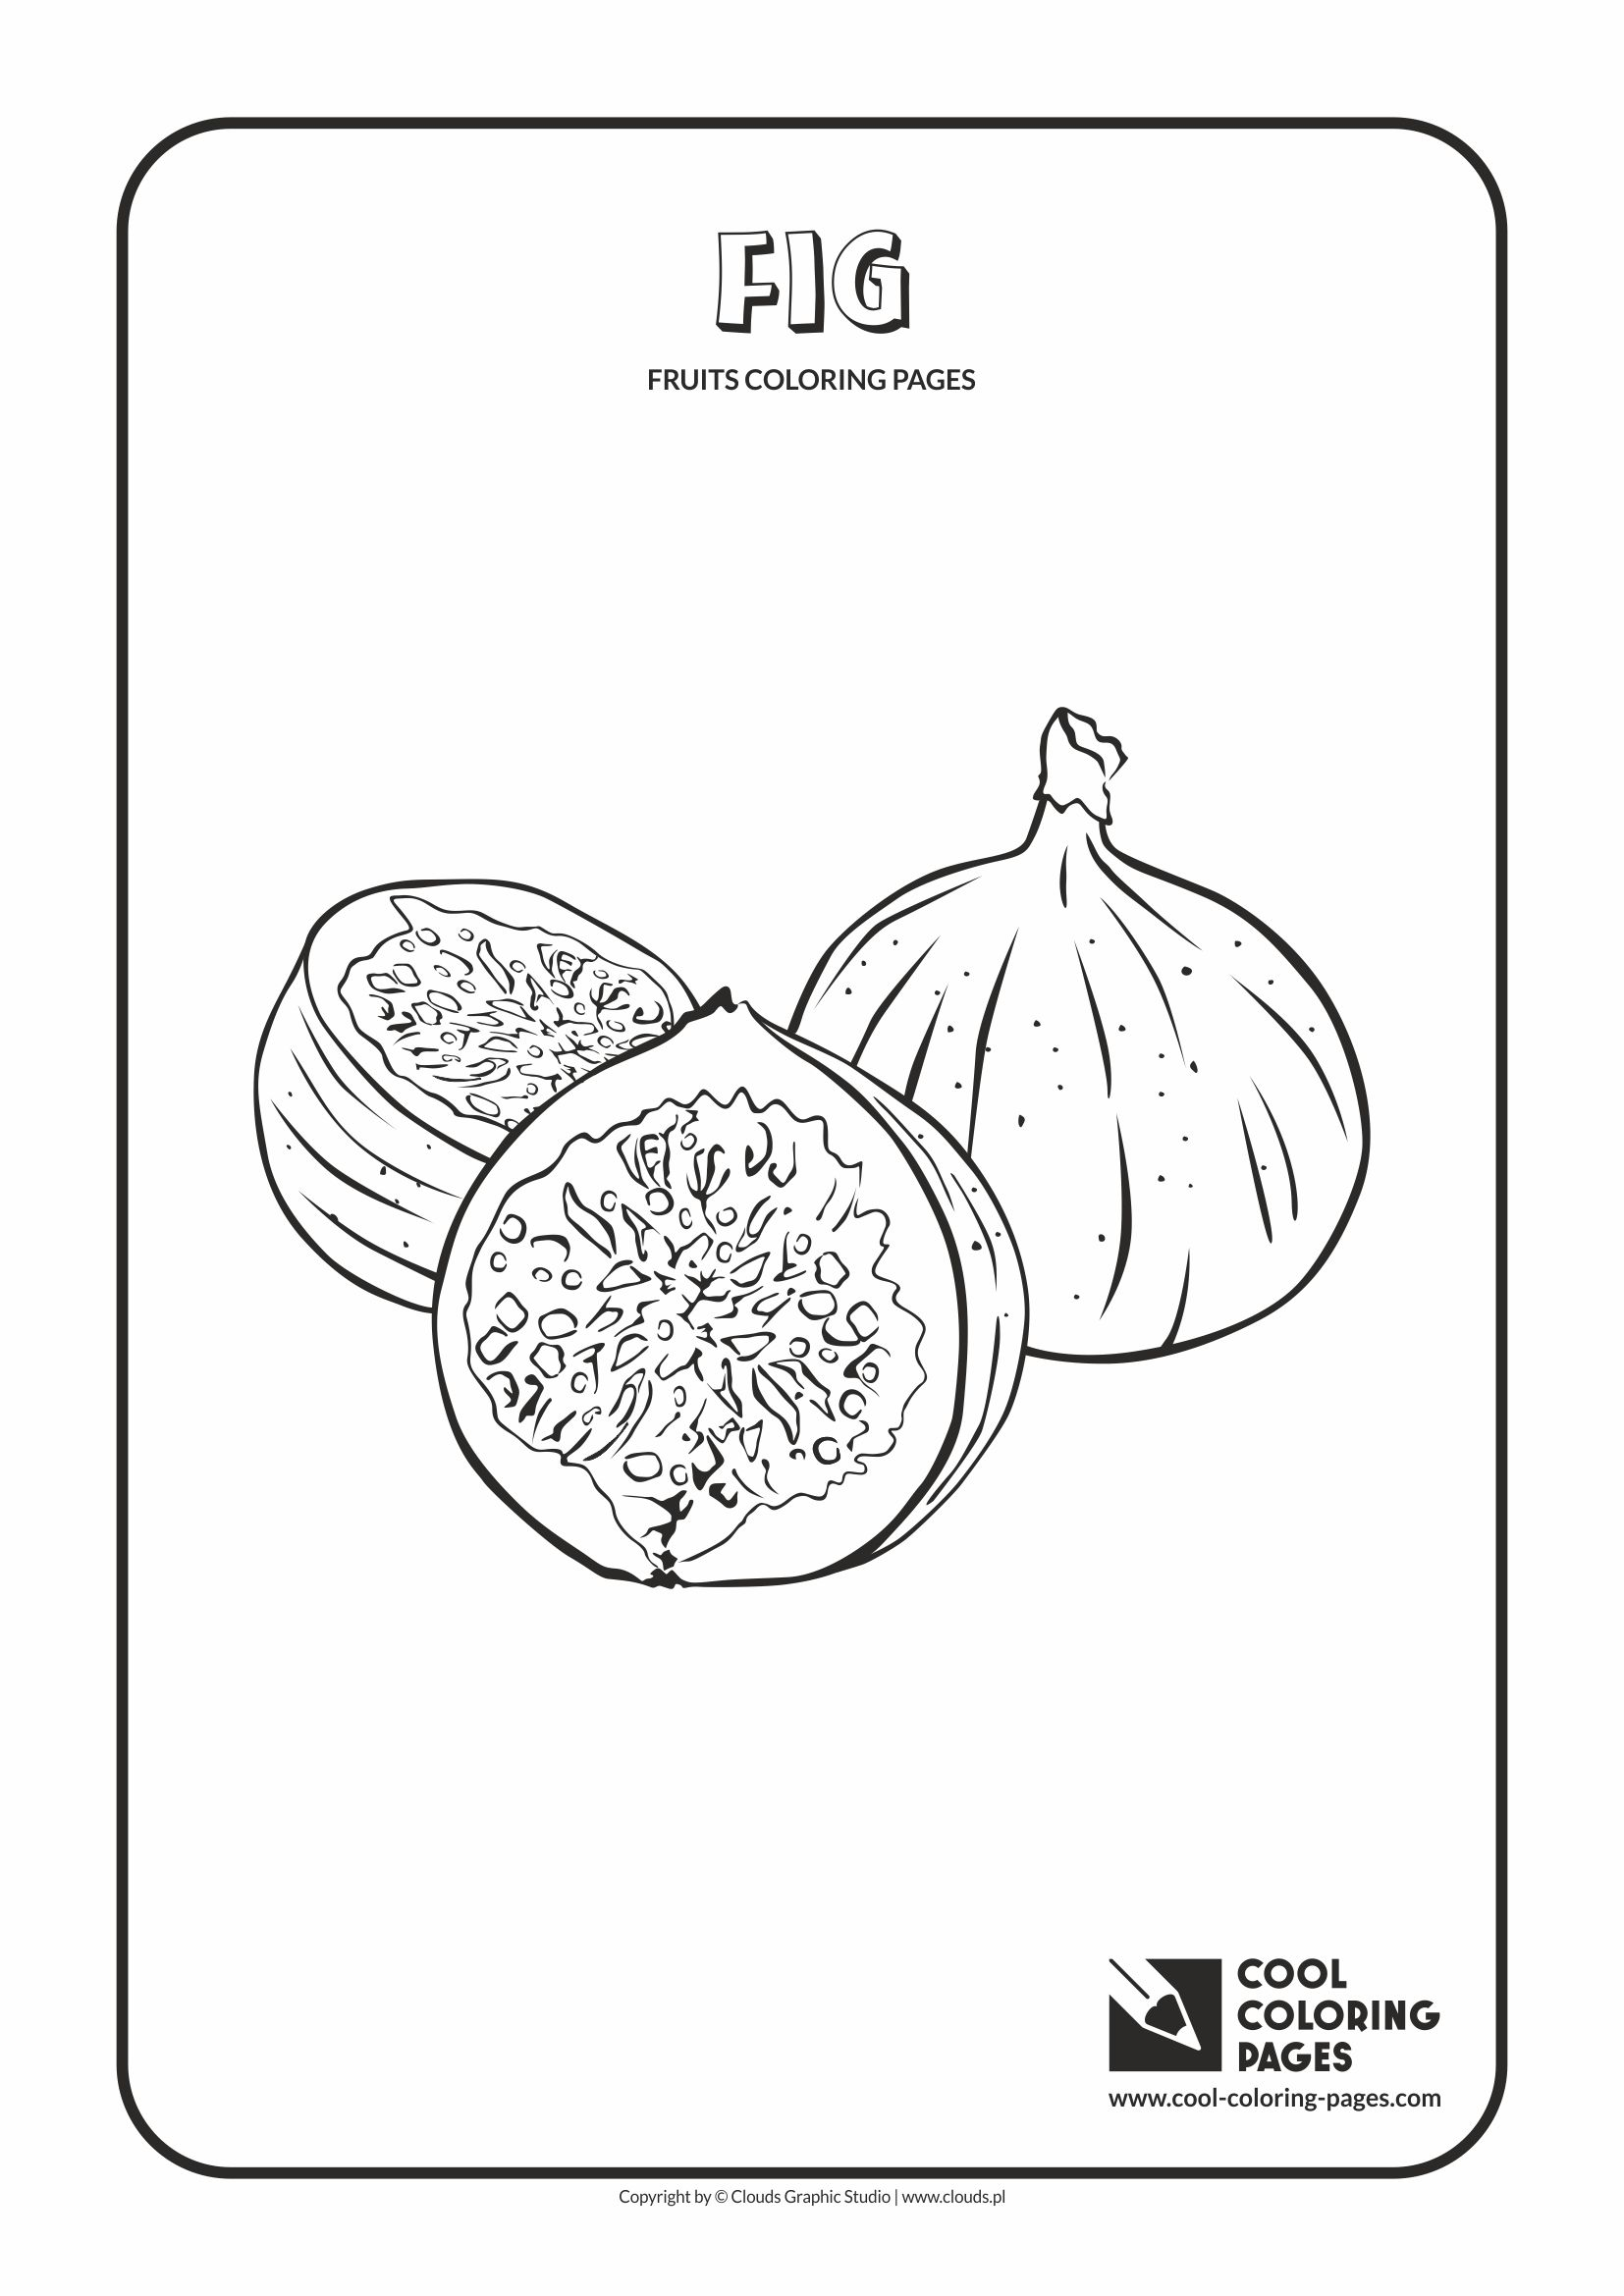 Cool Coloring Pages - Plants / Fig / Coloring page with fig